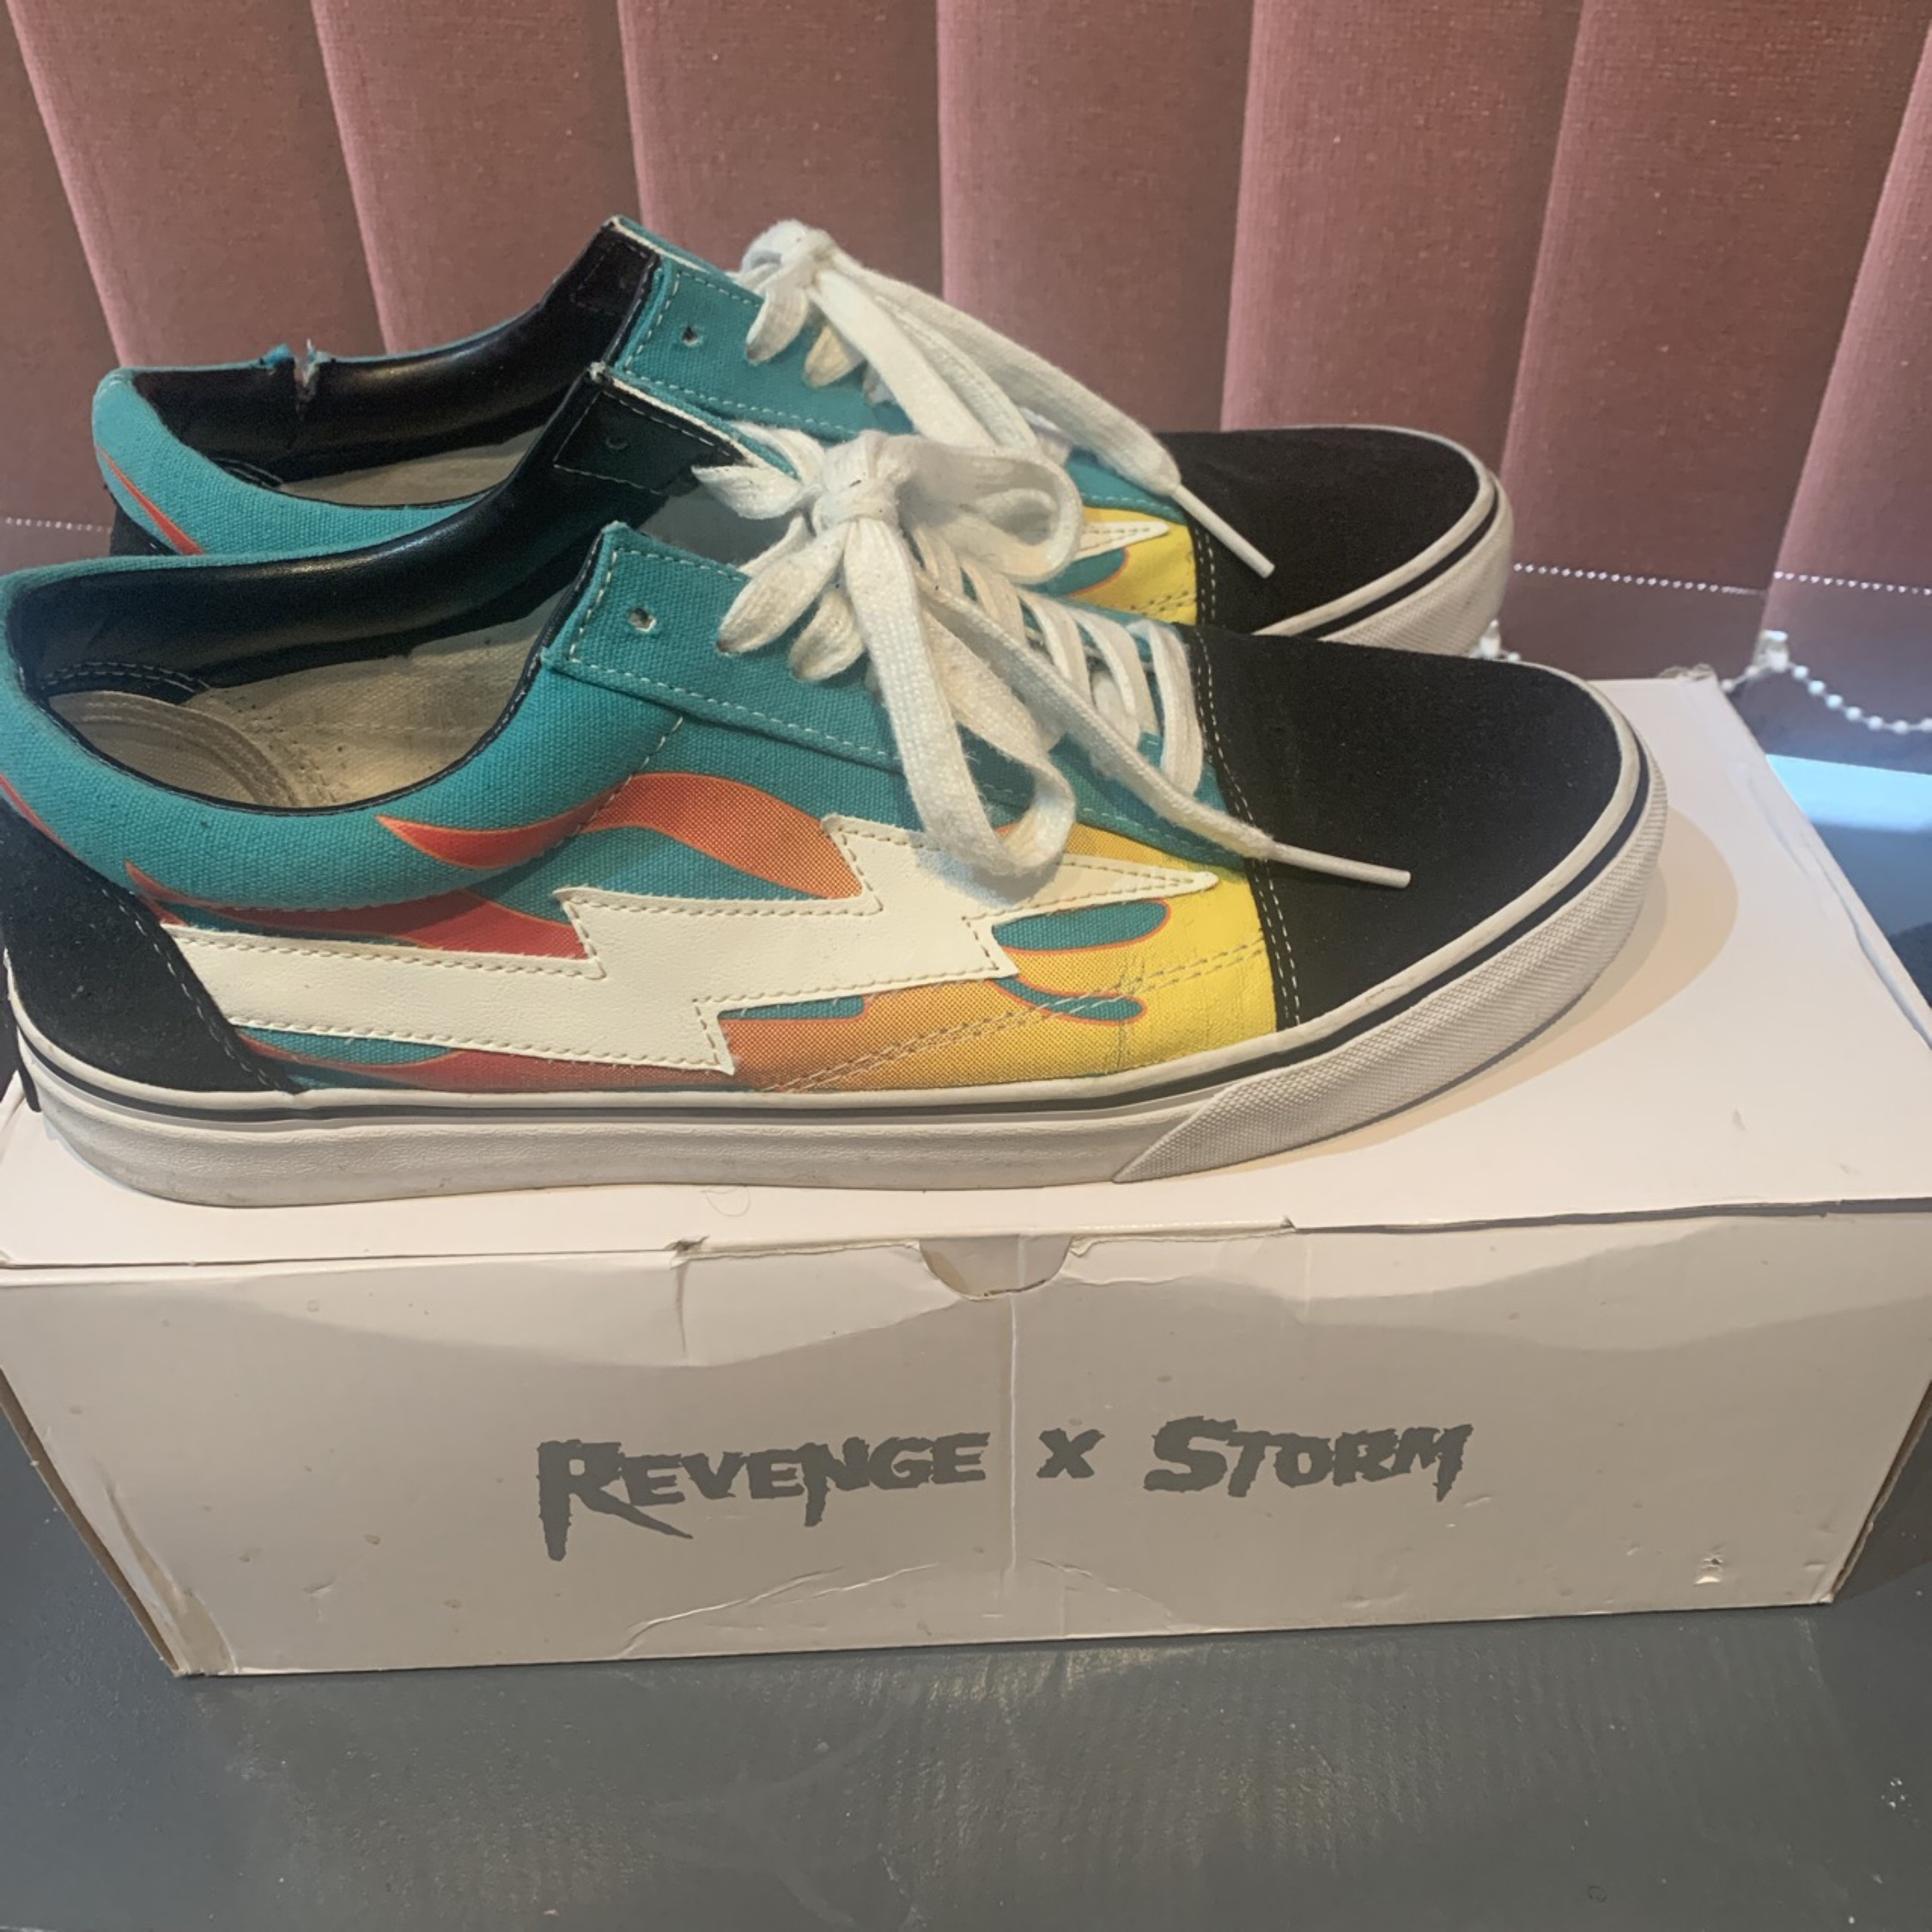 Revenge X Storm Low Top Teal With Flames